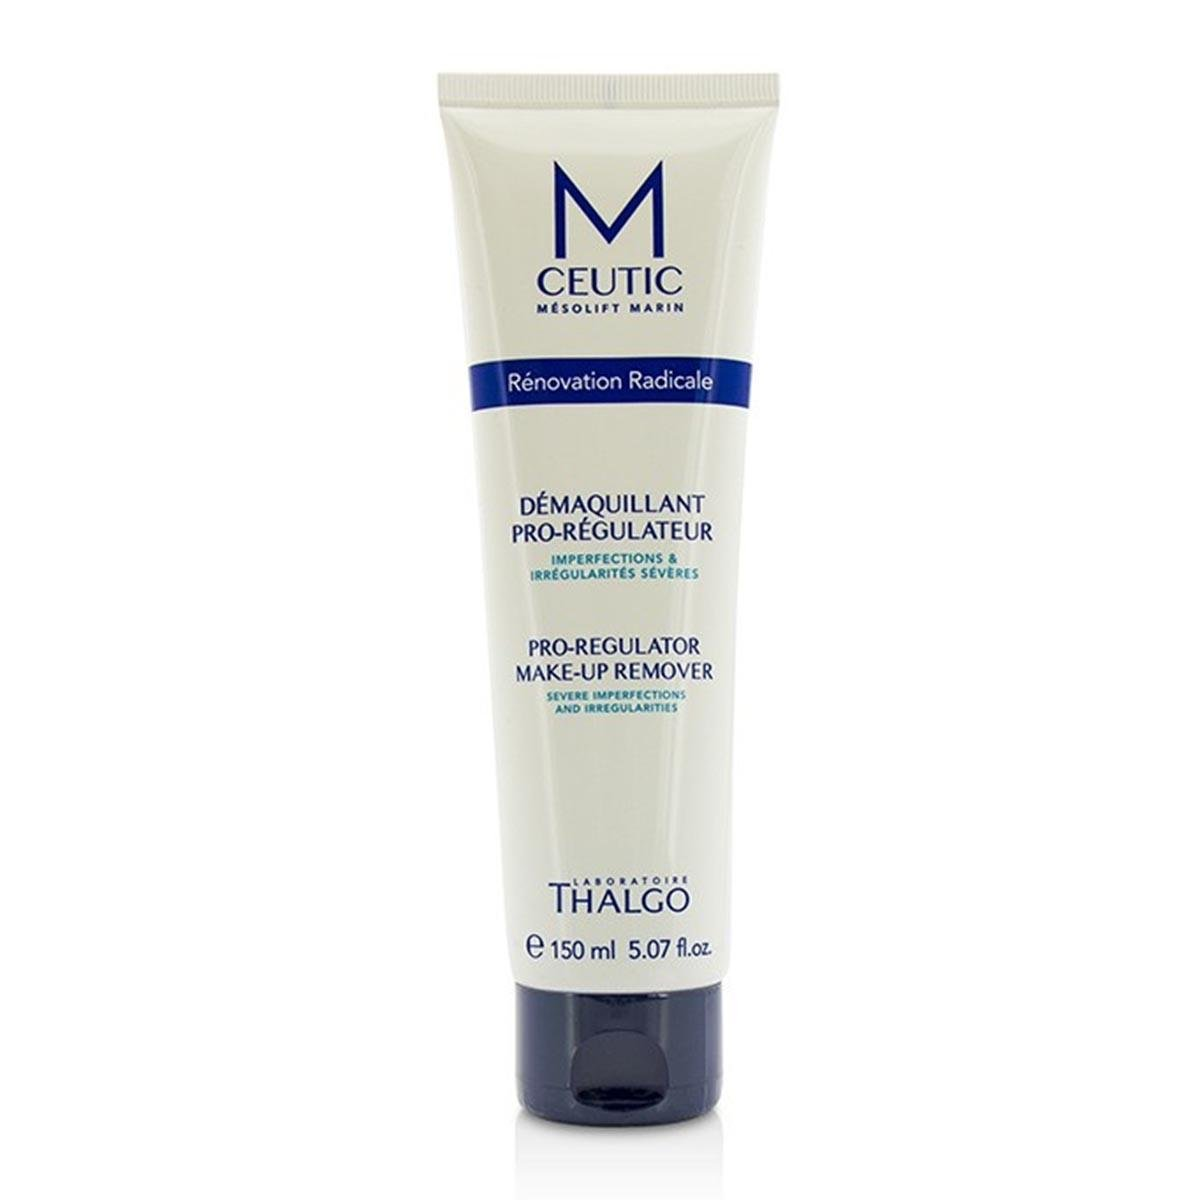 Mceutic by Thalgo Pro-Regulator Makeup Remover 150ml 58045